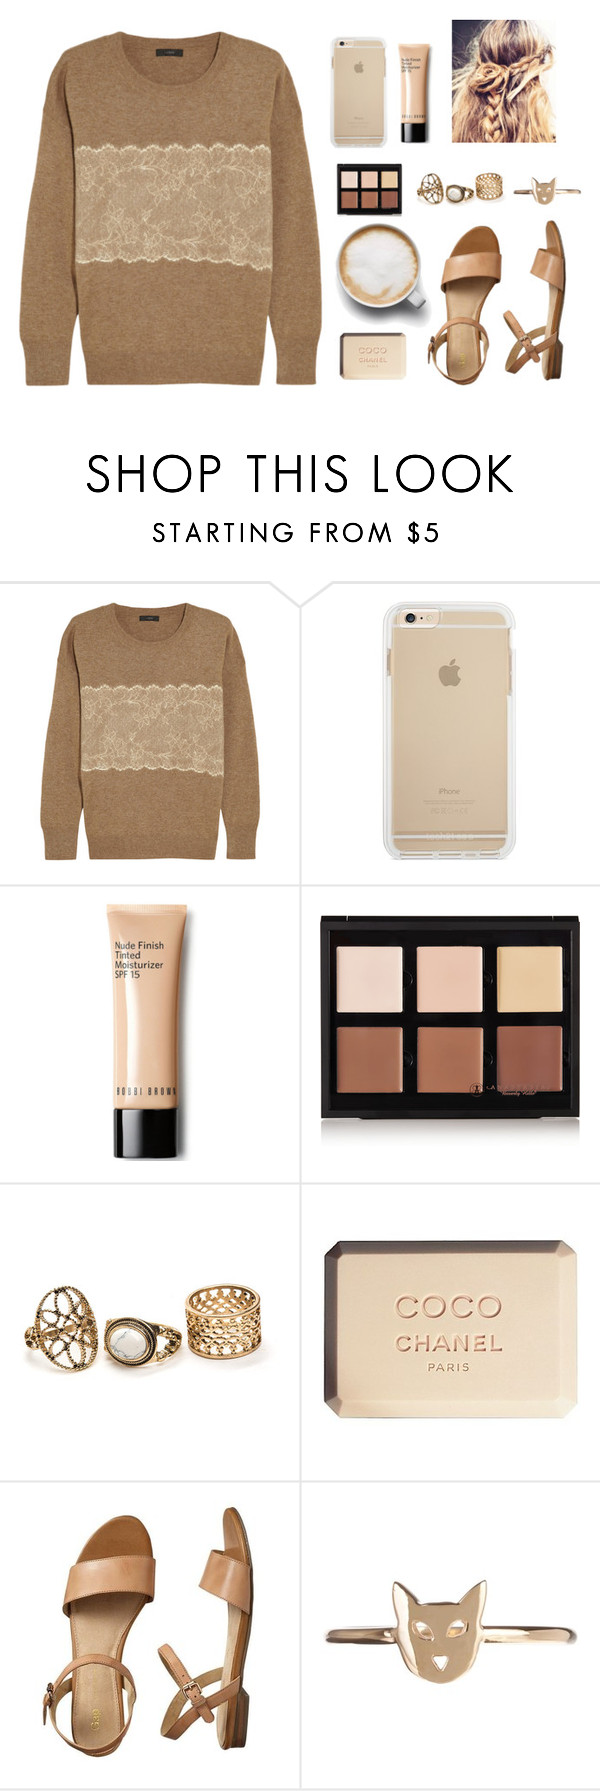 """Untitled #2"" by forevermiya ❤ liked on Polyvore featuring J.Crew, Anastasia Beverly Hills, Chanel, Gap and Karen Walker"